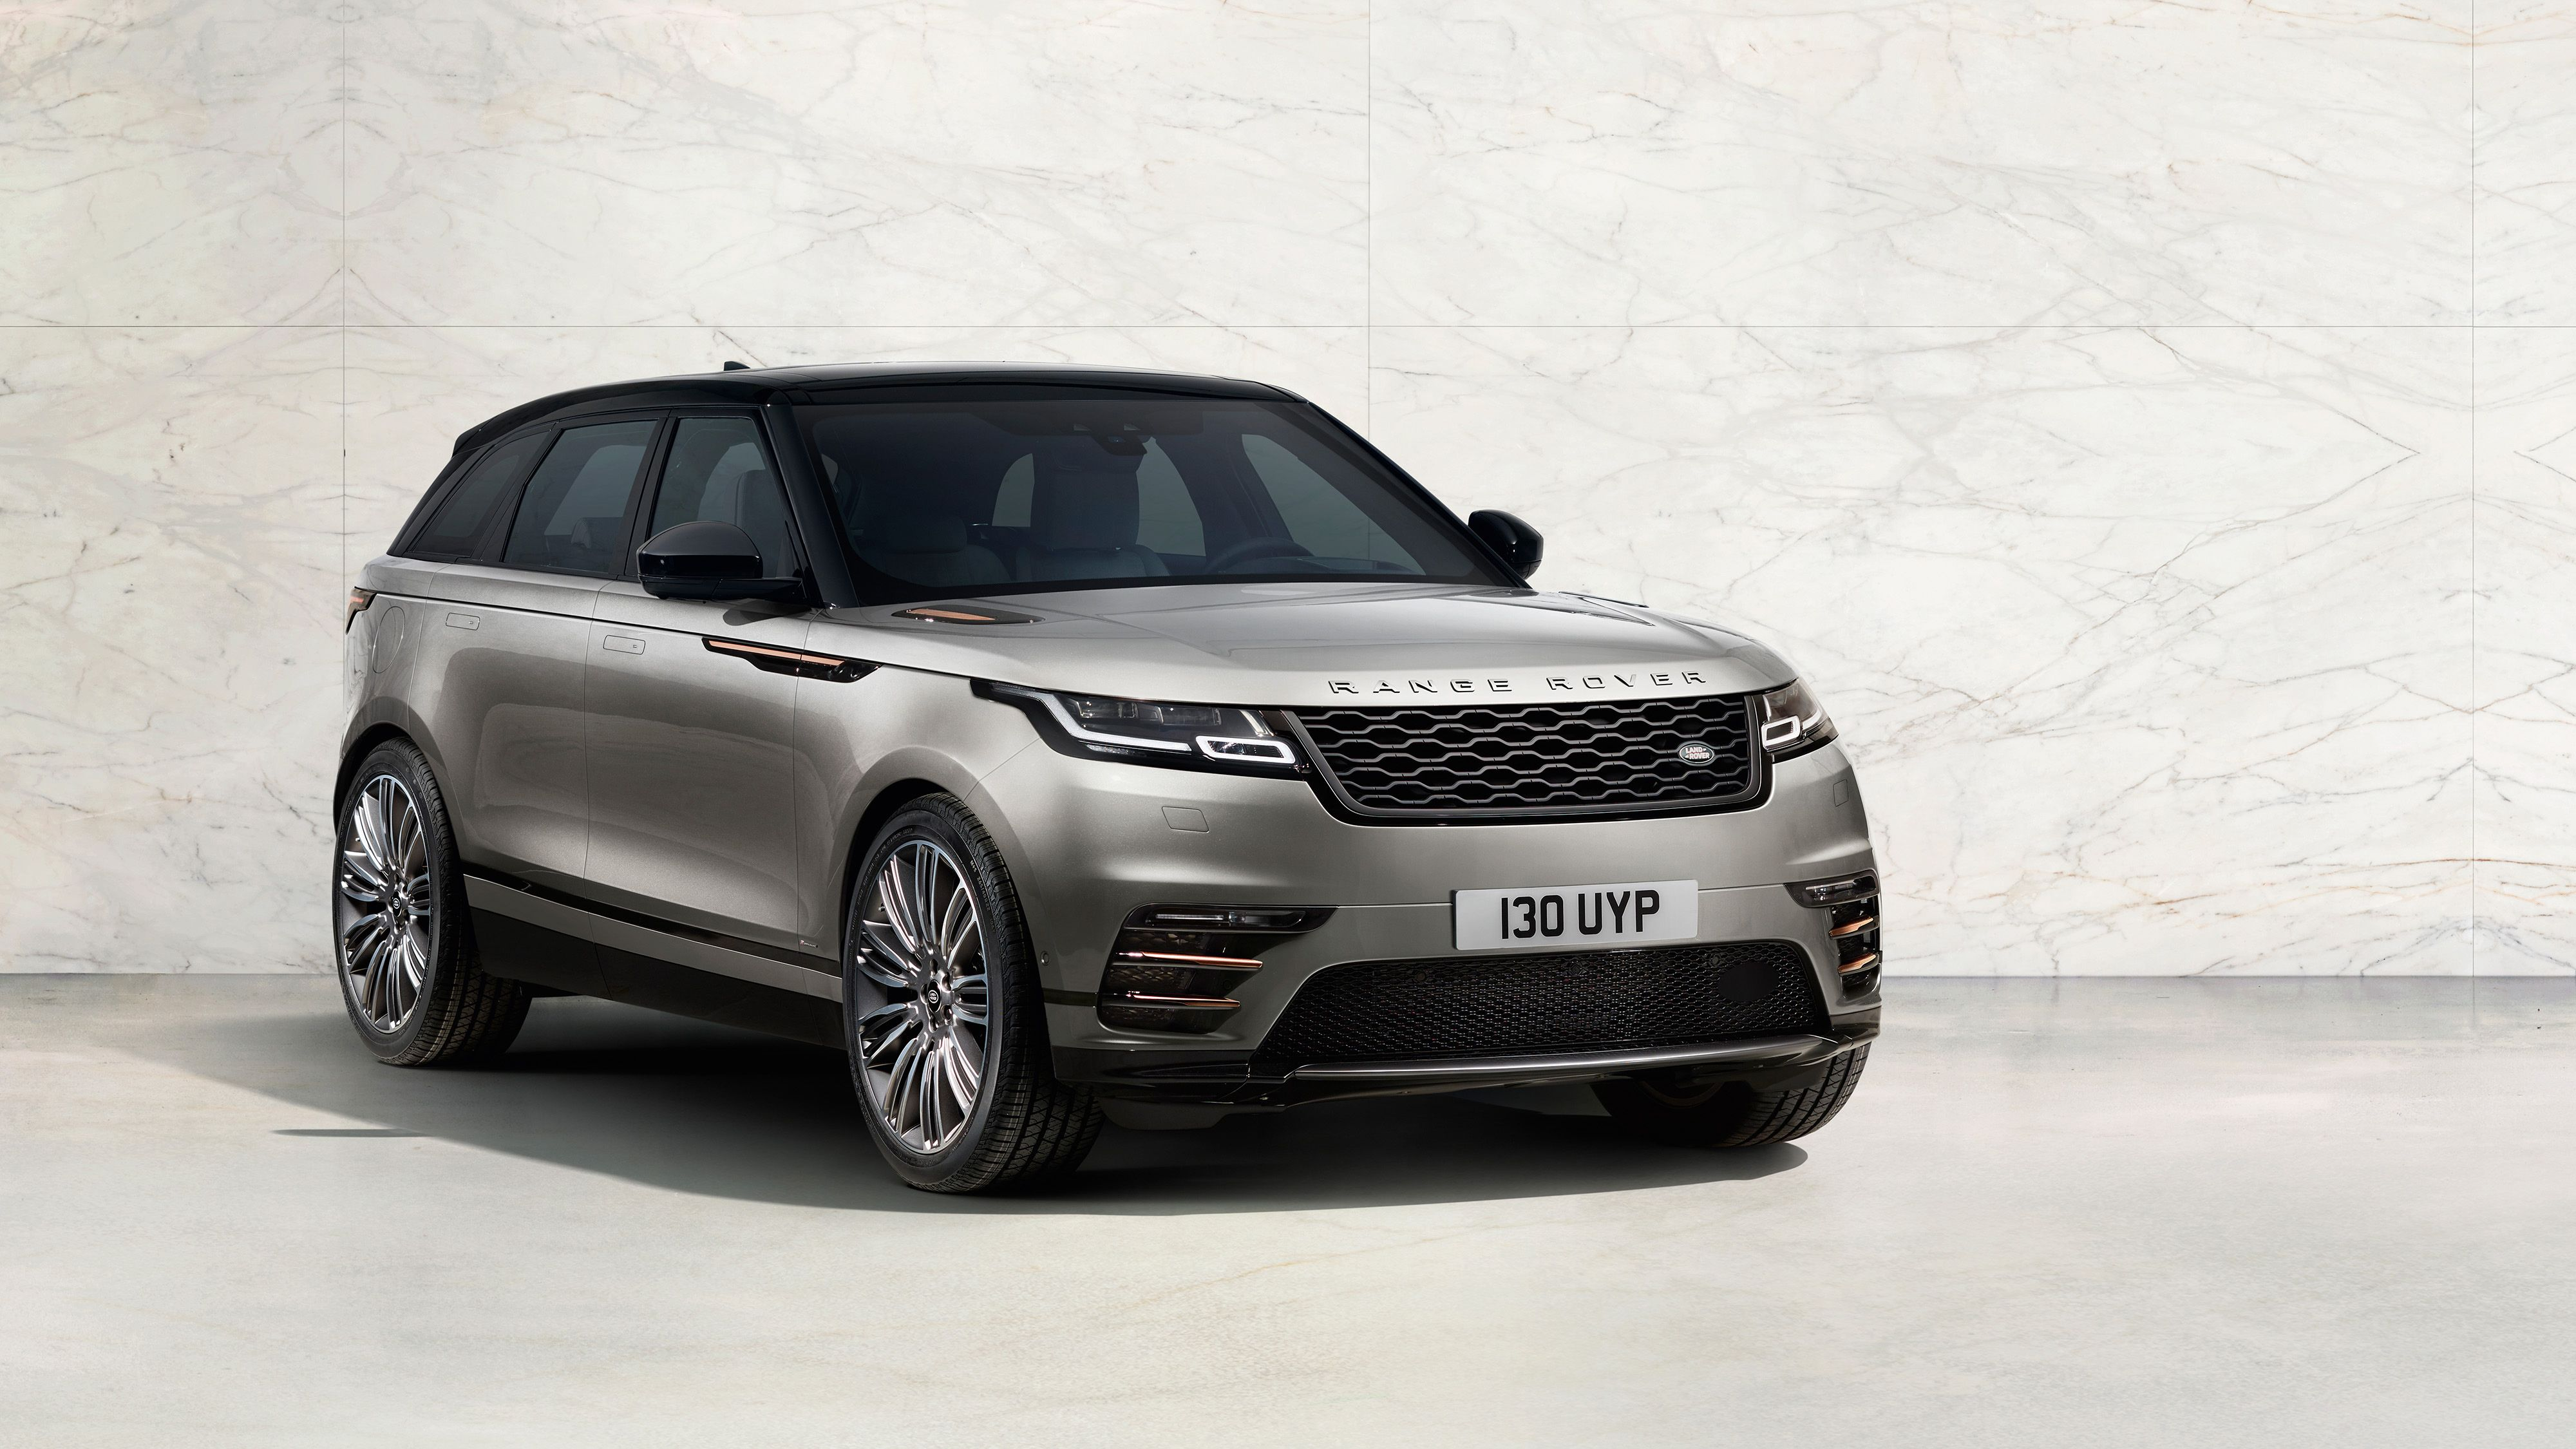 Download land rover range rover car wallpapers in hd for your desktop, phone or tablet. Range Rover Velar Wallpapers Top Free Range Rover Velar Backgrounds Wallpaperaccess